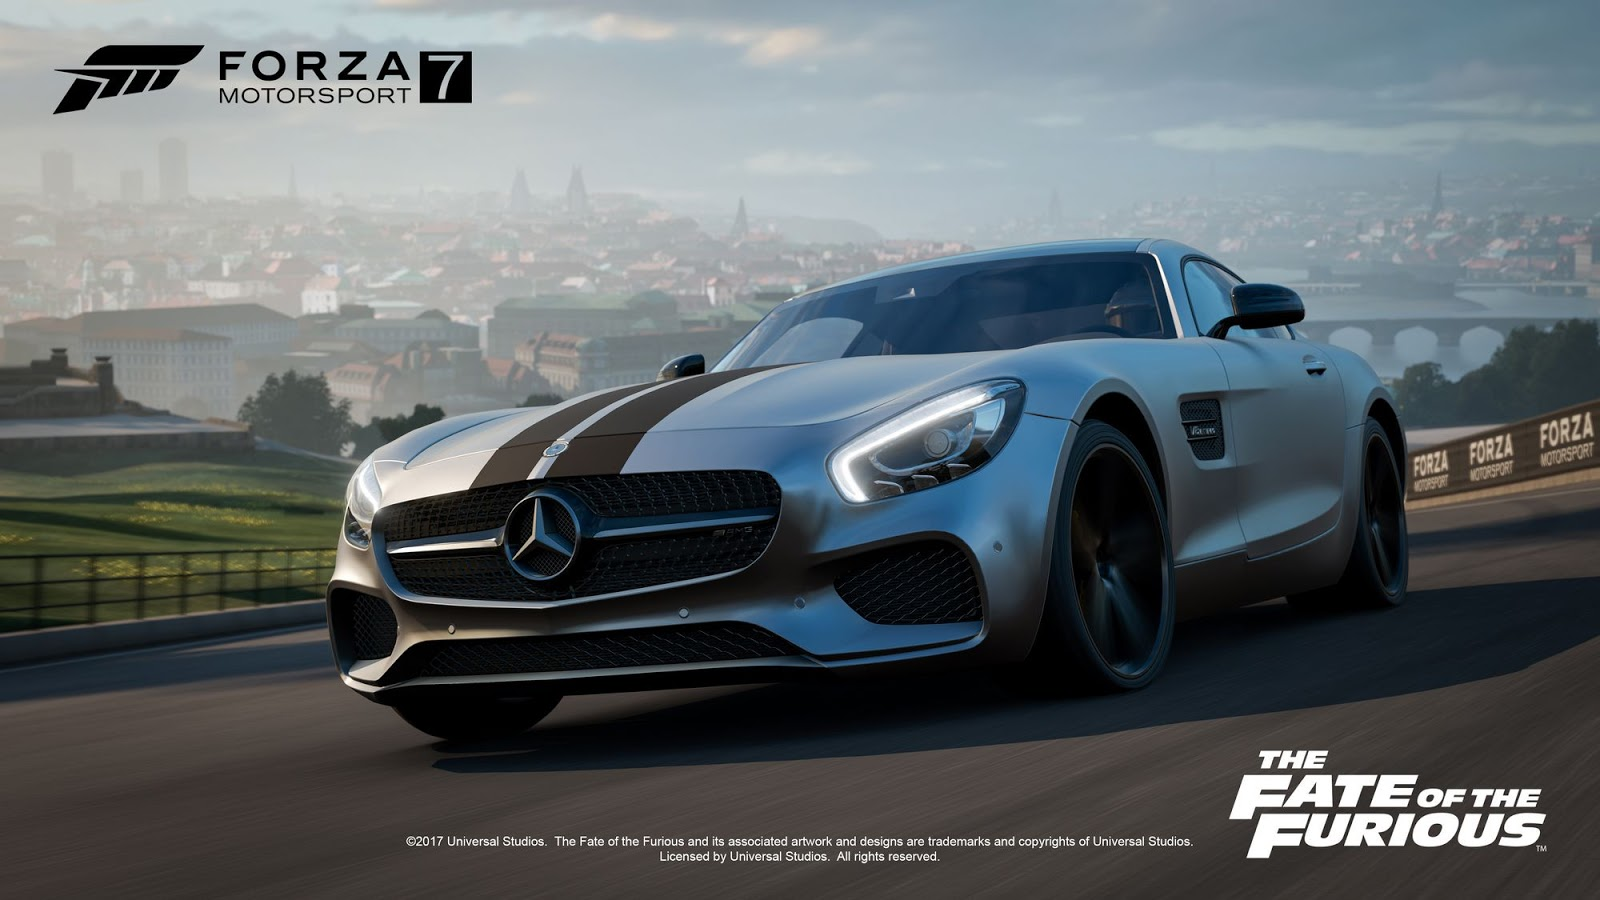 Forza Motorsport 7 Welcomes The Fate Of The Furious Car